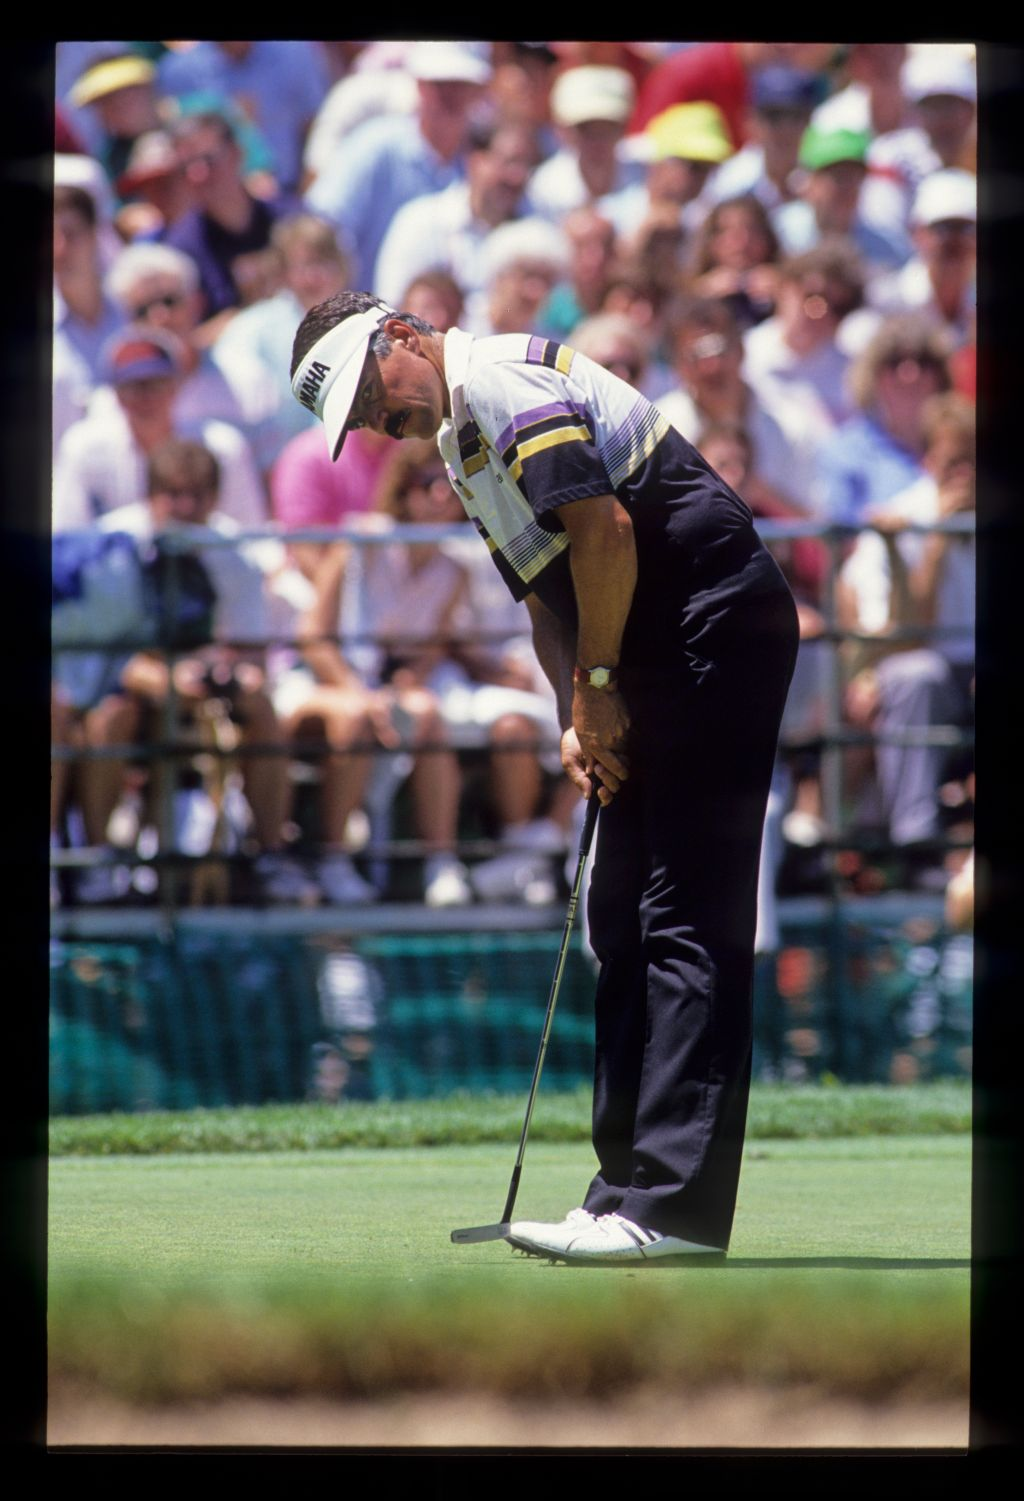 Scott Simpson putting during the 1990 US Open